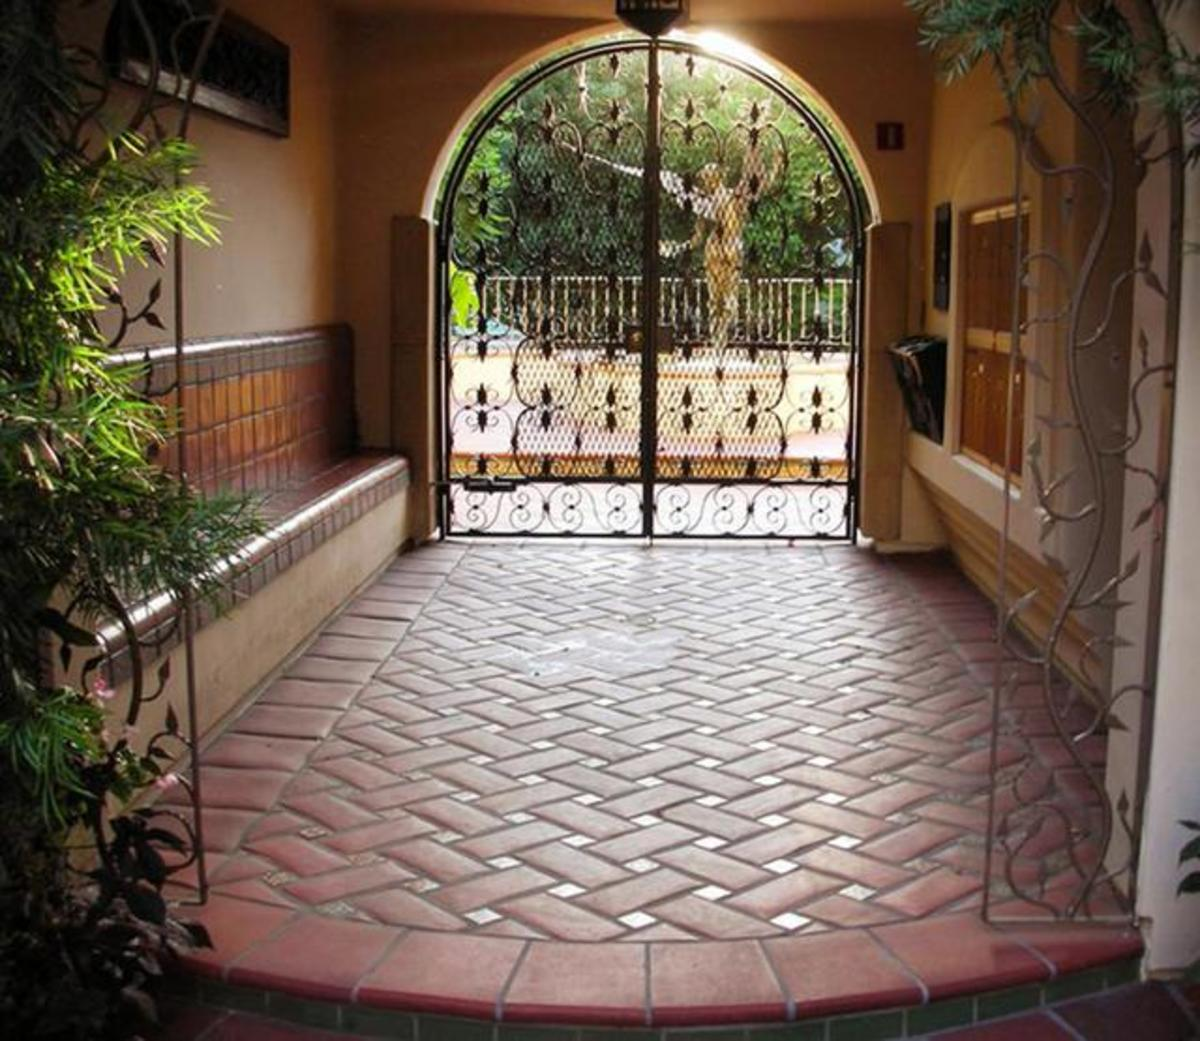 beautiful herringbone terracotta with tan porcelain tile leading to an ornate wrought iron gate and a glimpse of a water fountain with an angel just beyond the covered courtyard